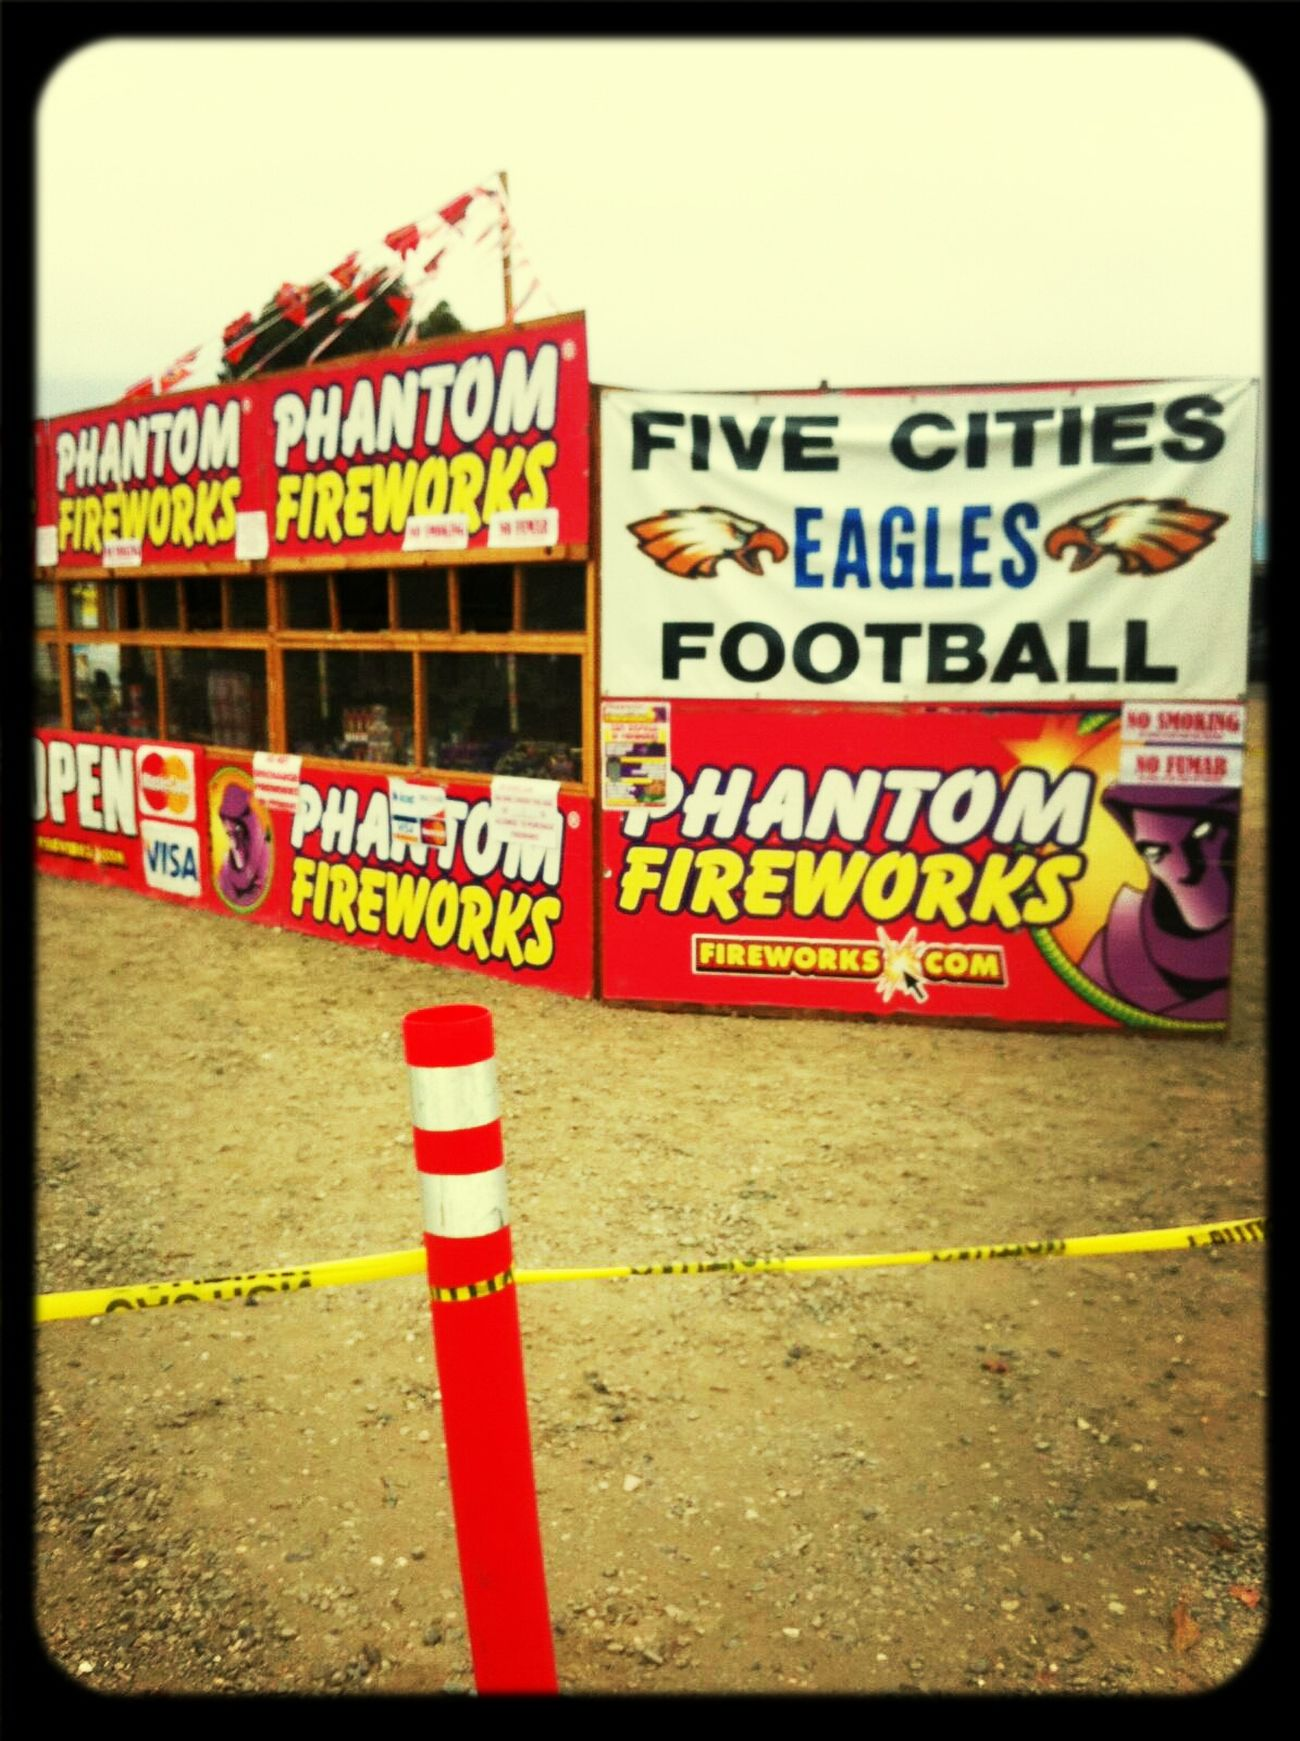 Come support Five Cities Youth Football & Cheer League!!!!! Open 9am-9pm 7/3 & 7/4 Grand & Halcyon in AG Fundraising